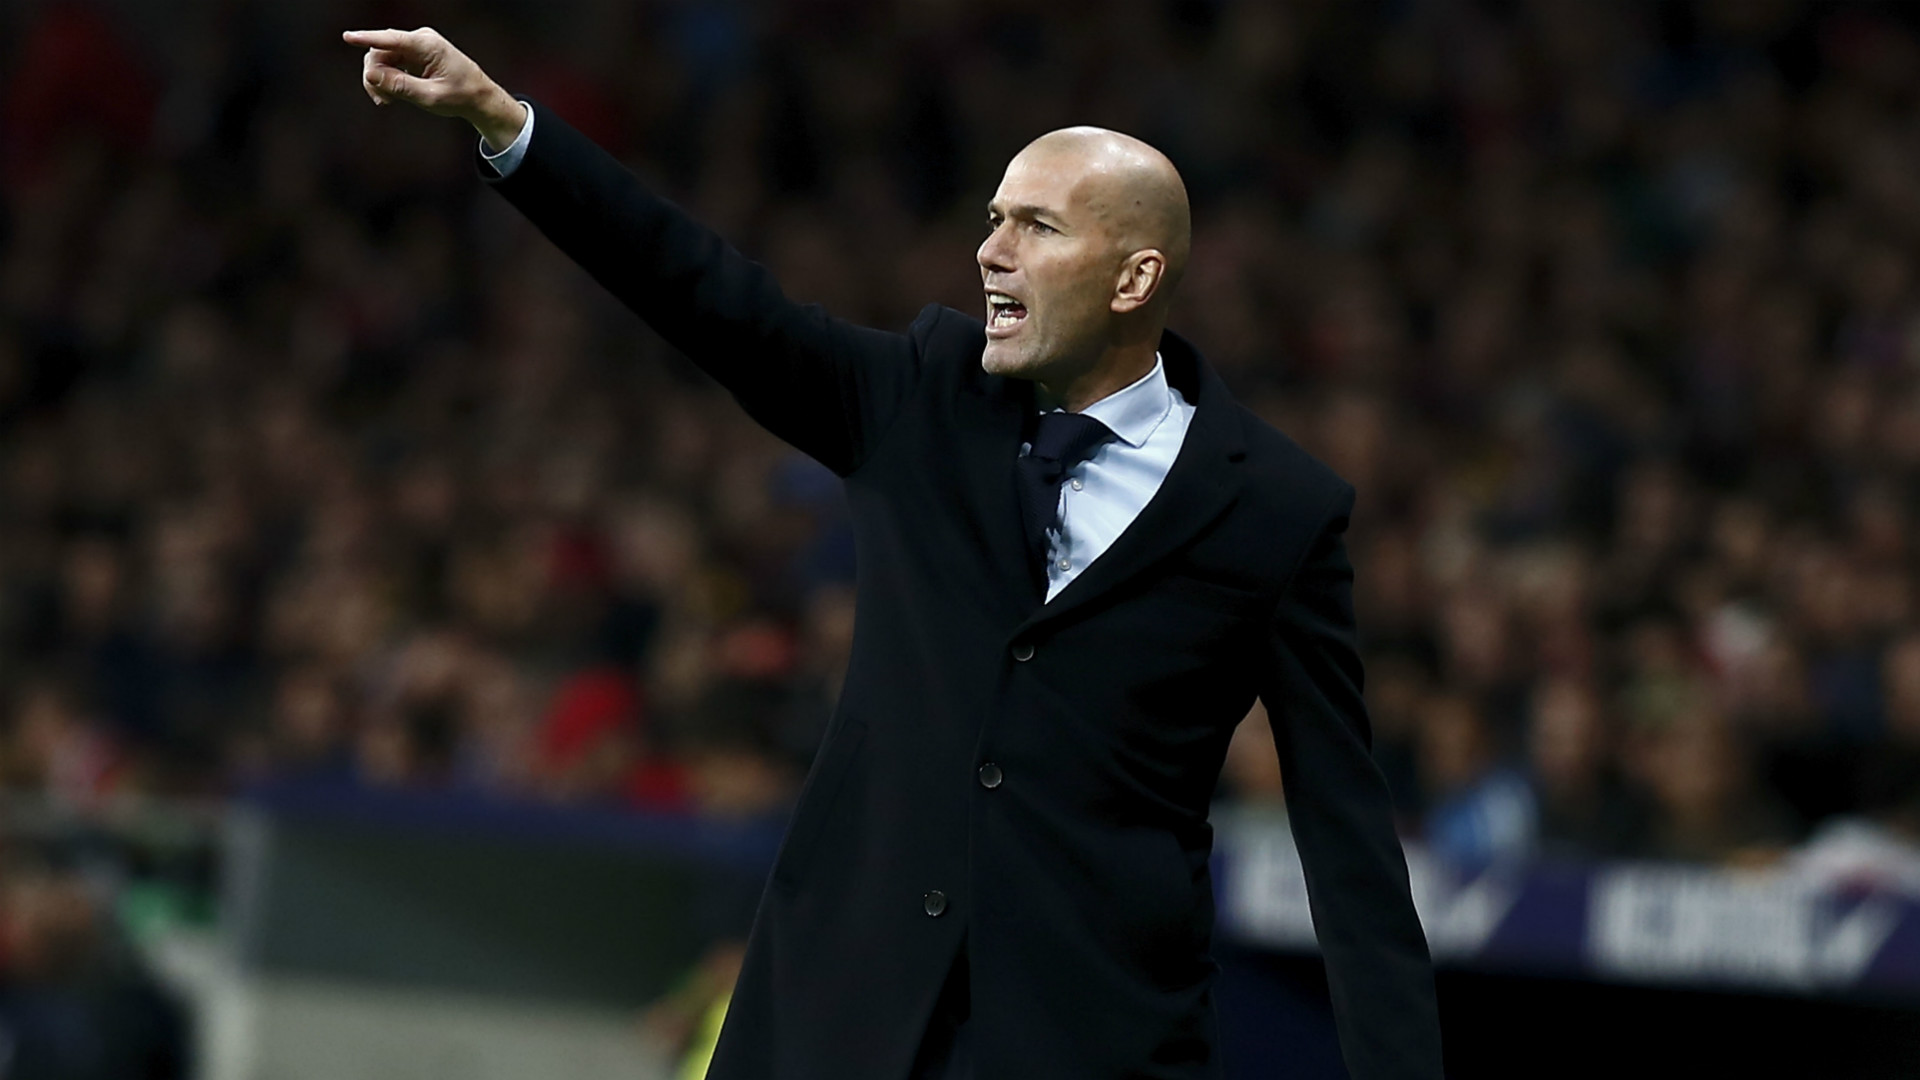 Zidane insists he doesn't want signings despite Madrid 'crisis'